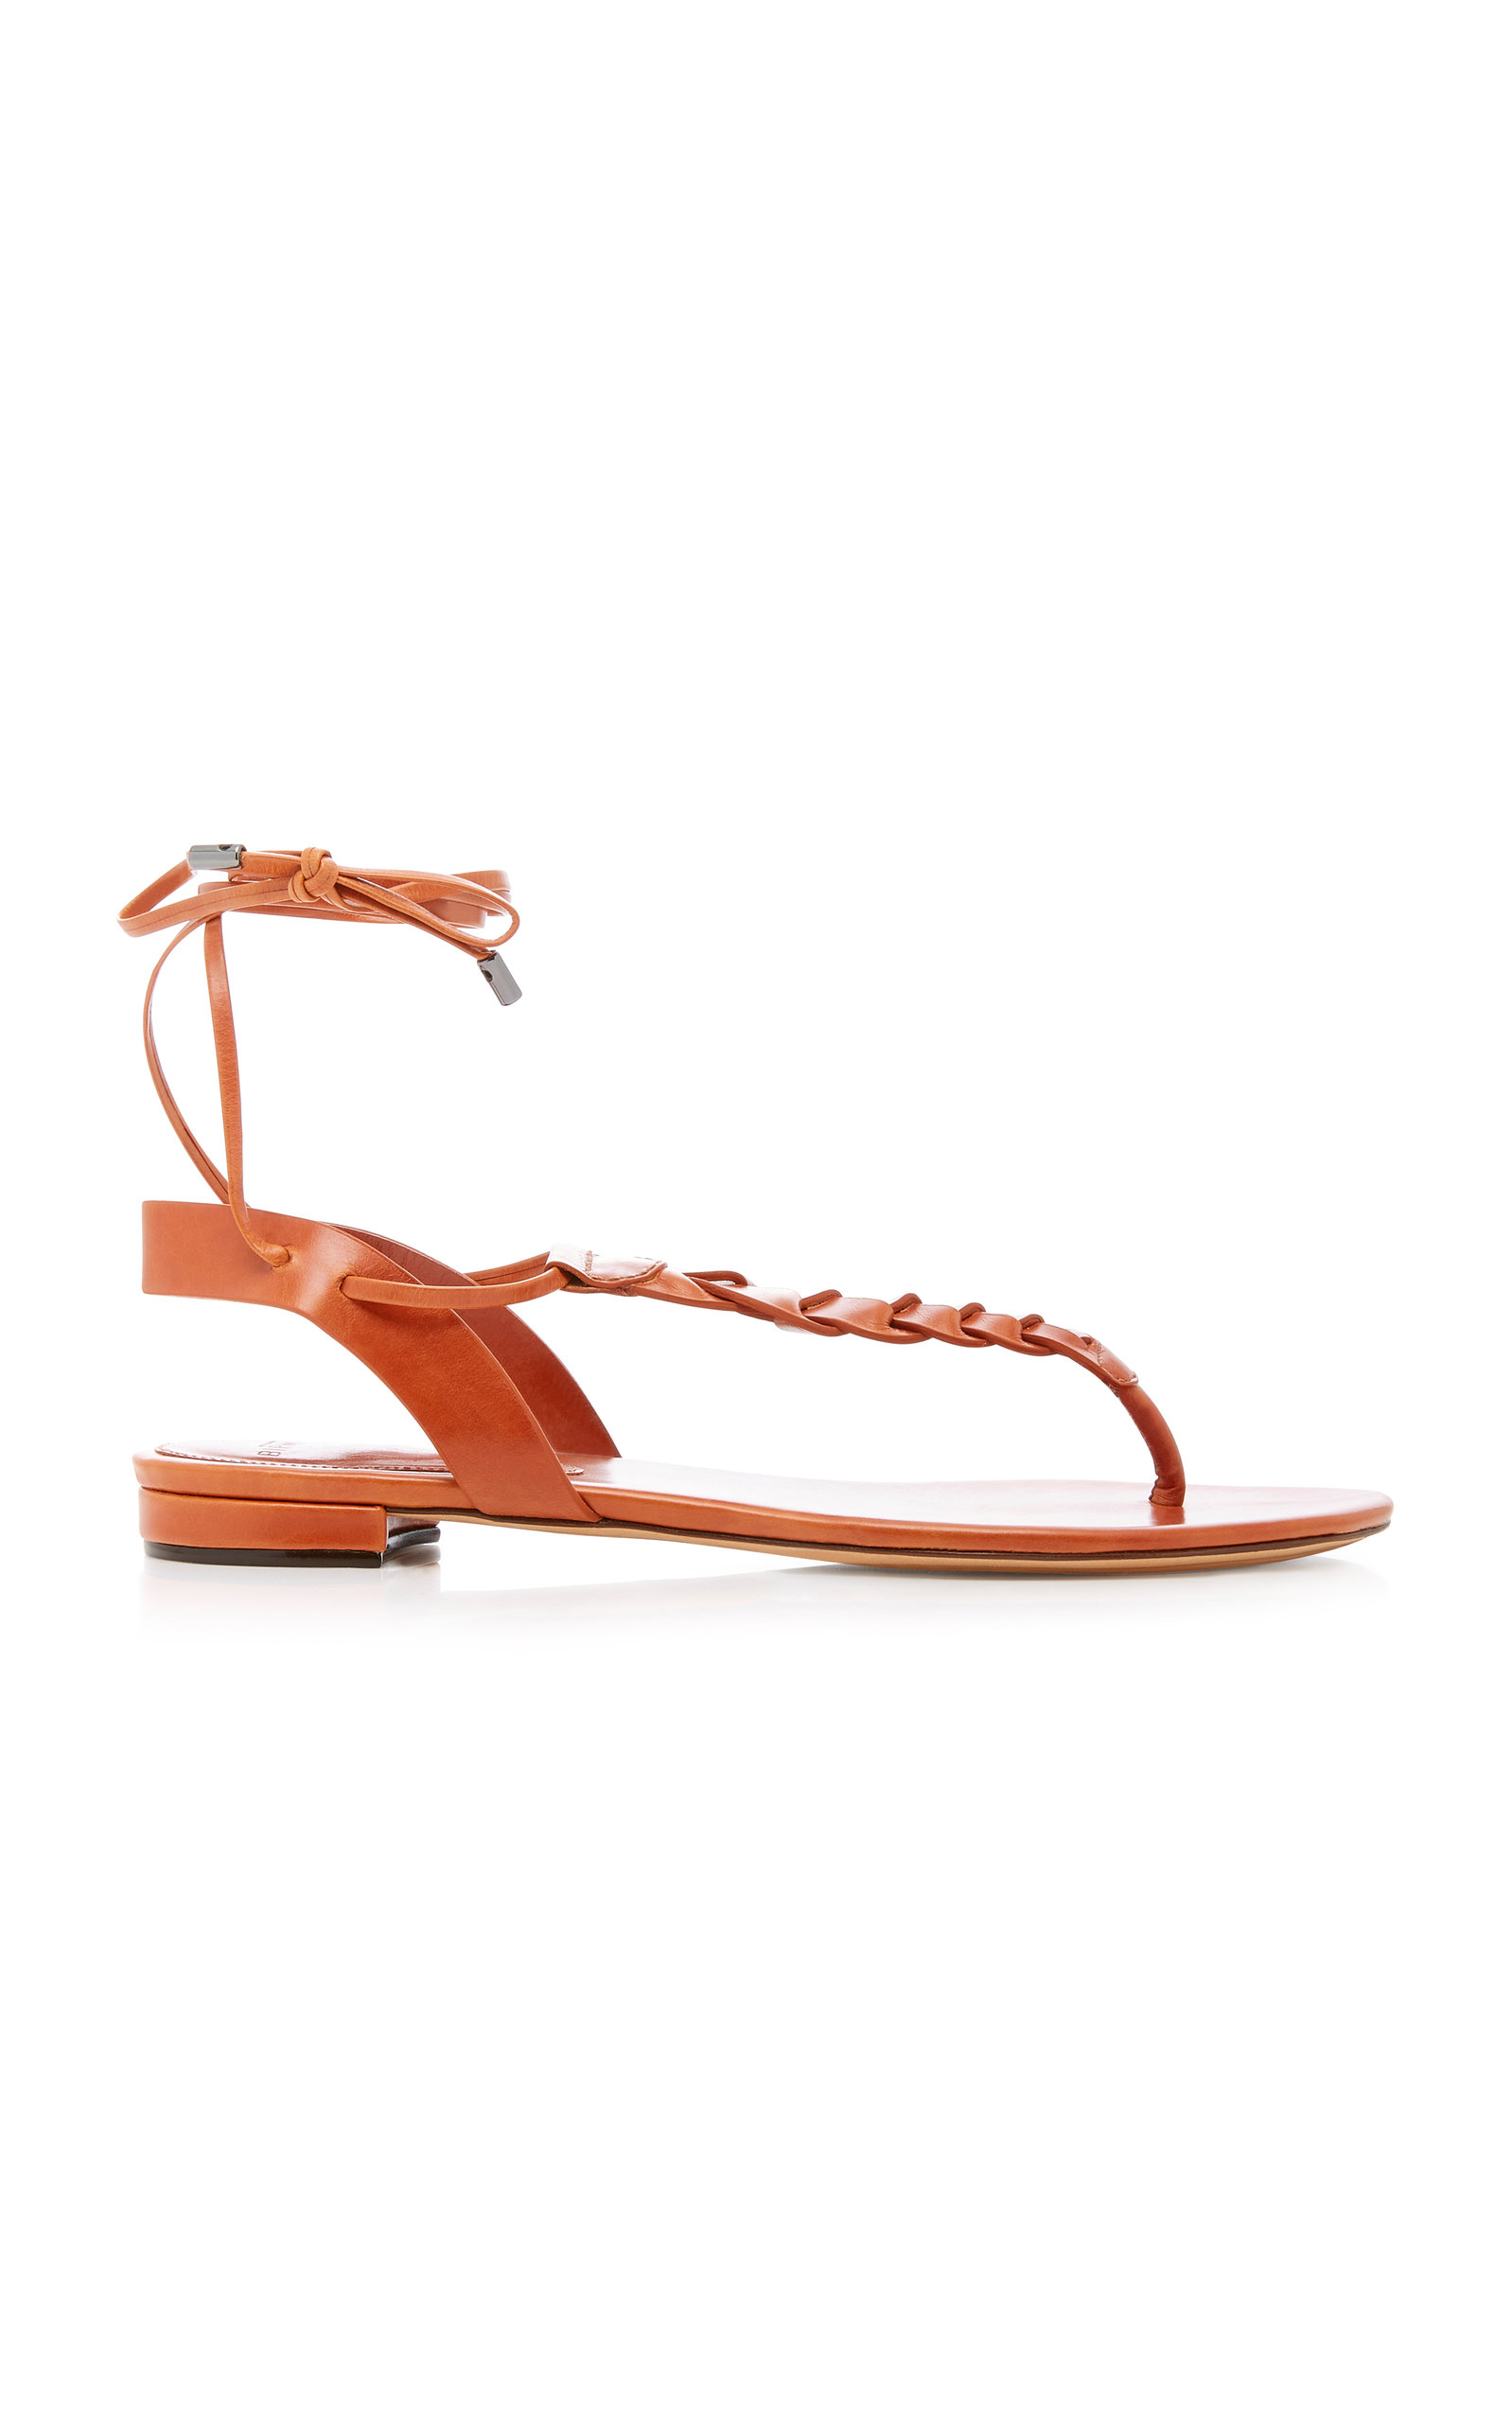 ABRIELLE LEATHER LACE-UP SANDALS